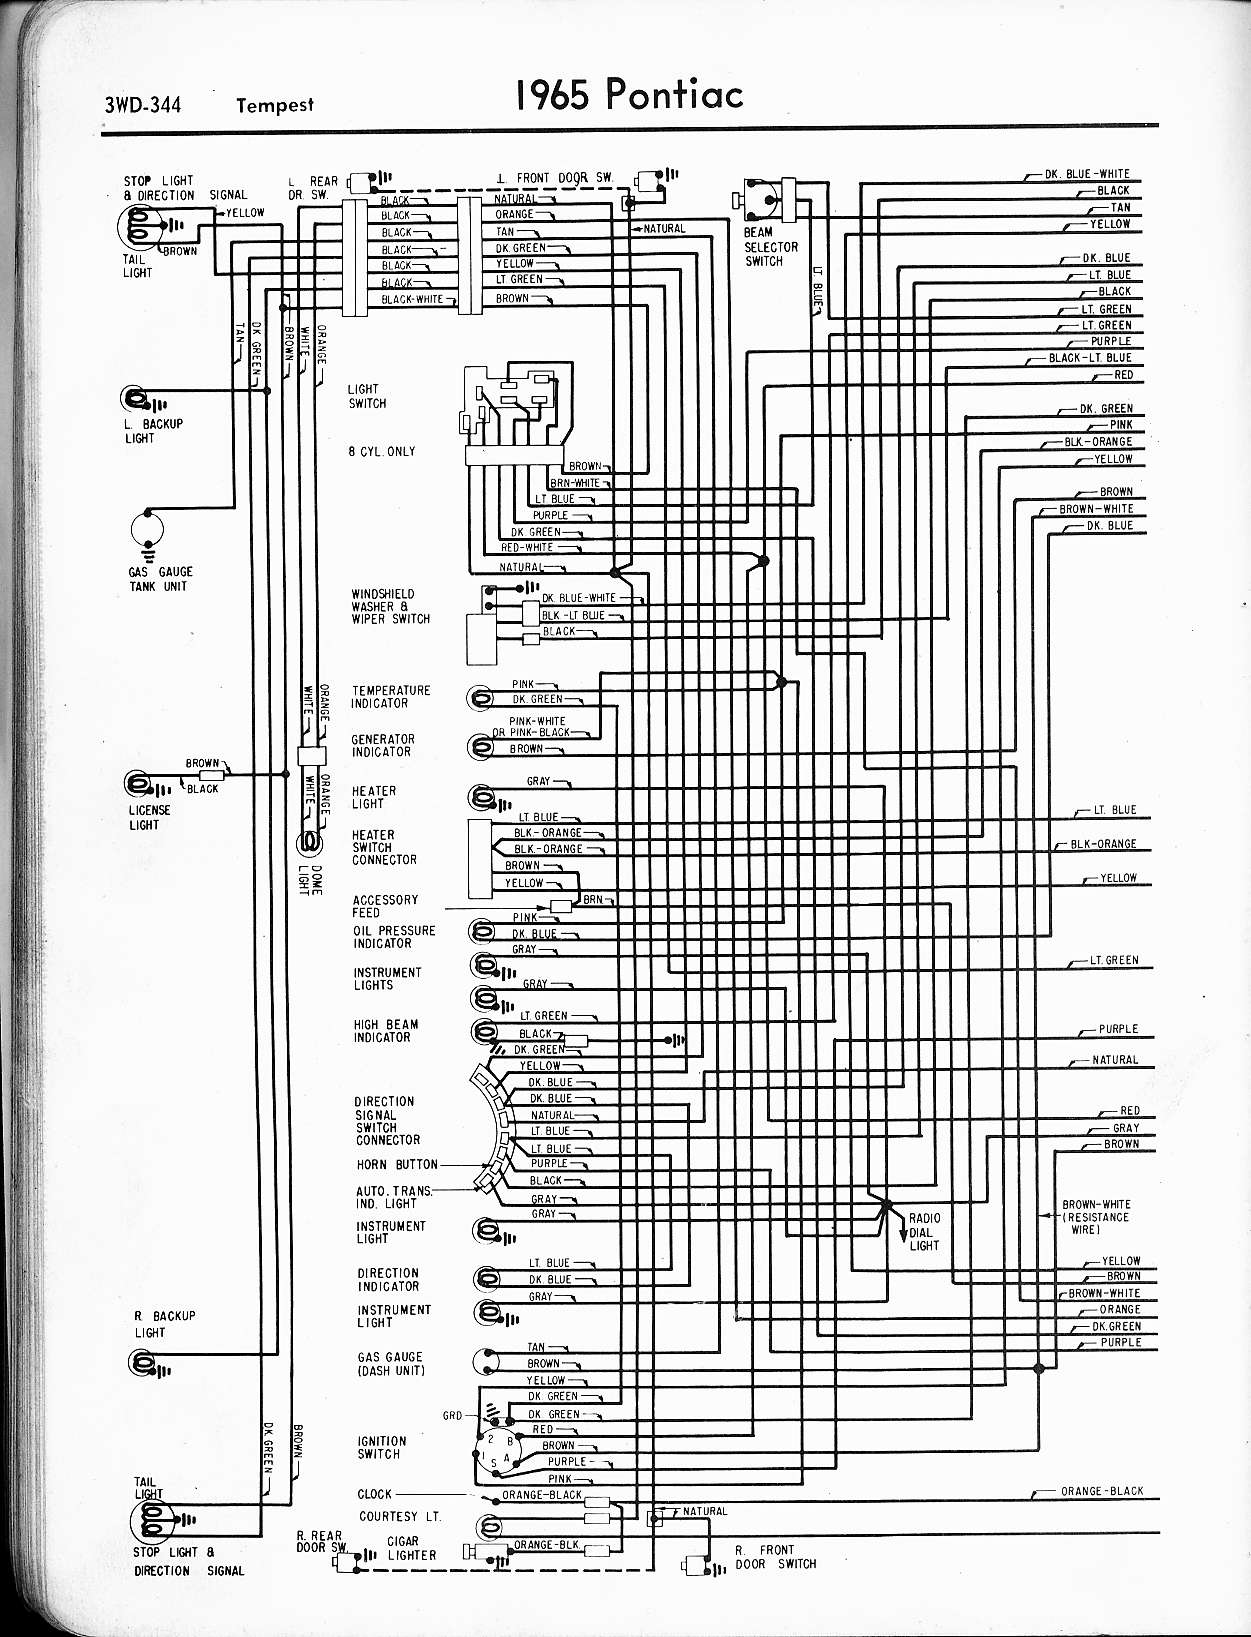 wallace racing wiring diagrams 1969 corvette wiper wiring diagram 1965 tempest, left page